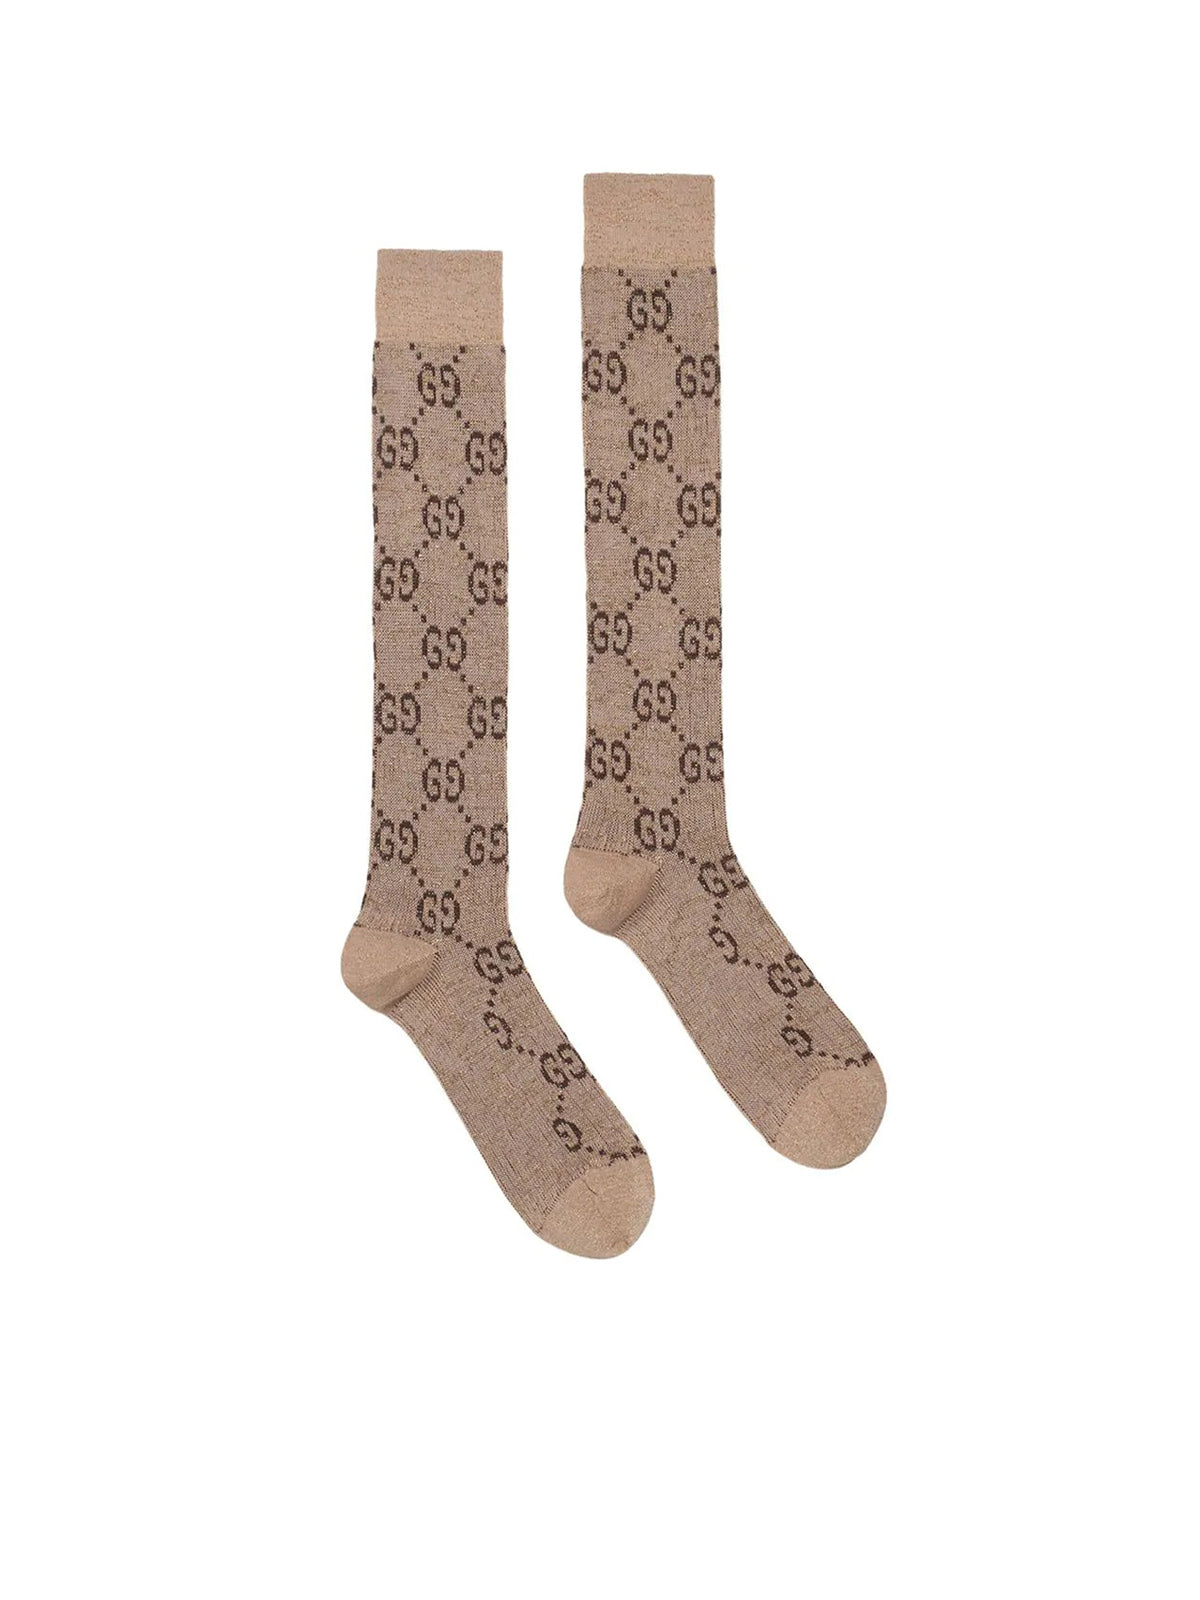 Lurex interlocking G socks